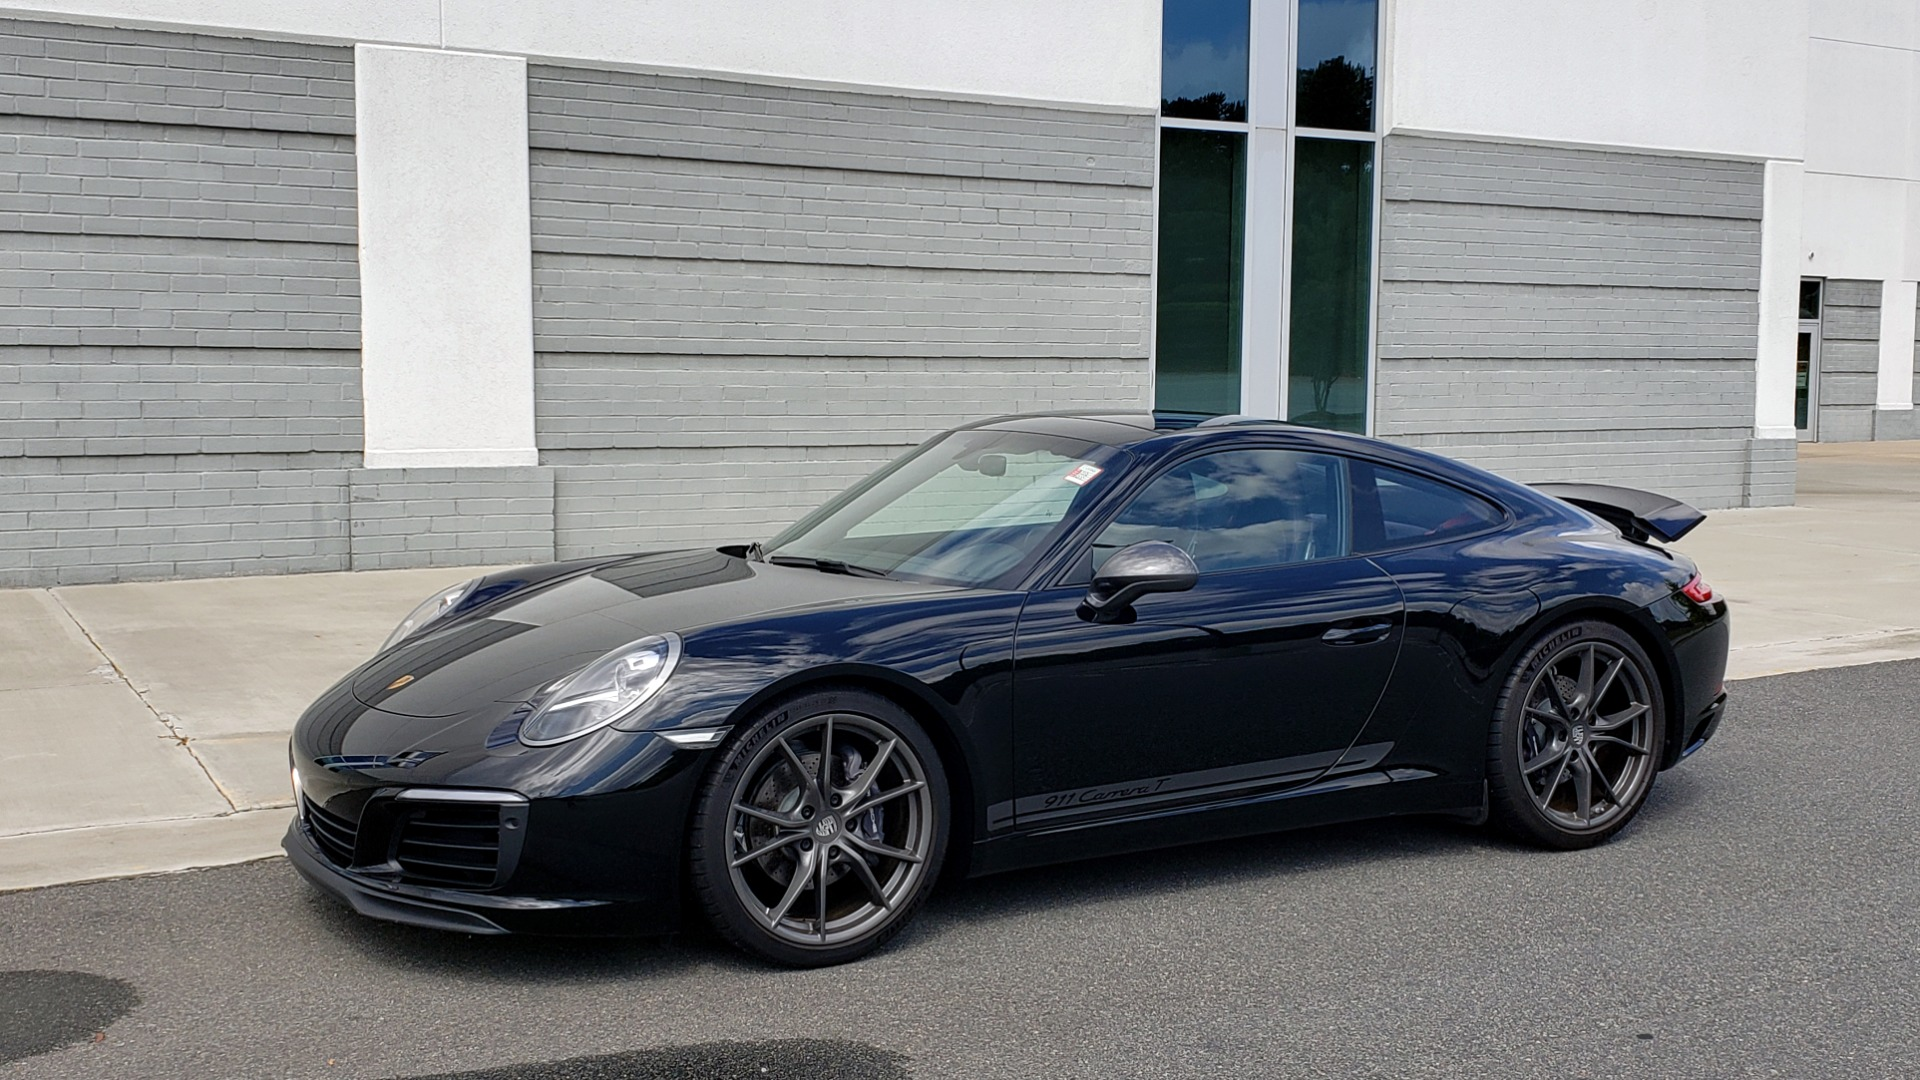 Used 2019 Porsche 911 CARRERA T / 3.0L H6 / MANUAL / PREMIUM / NAV / BOSE / SUNROOF / REARVIEW for sale $117,000 at Formula Imports in Charlotte NC 28227 5